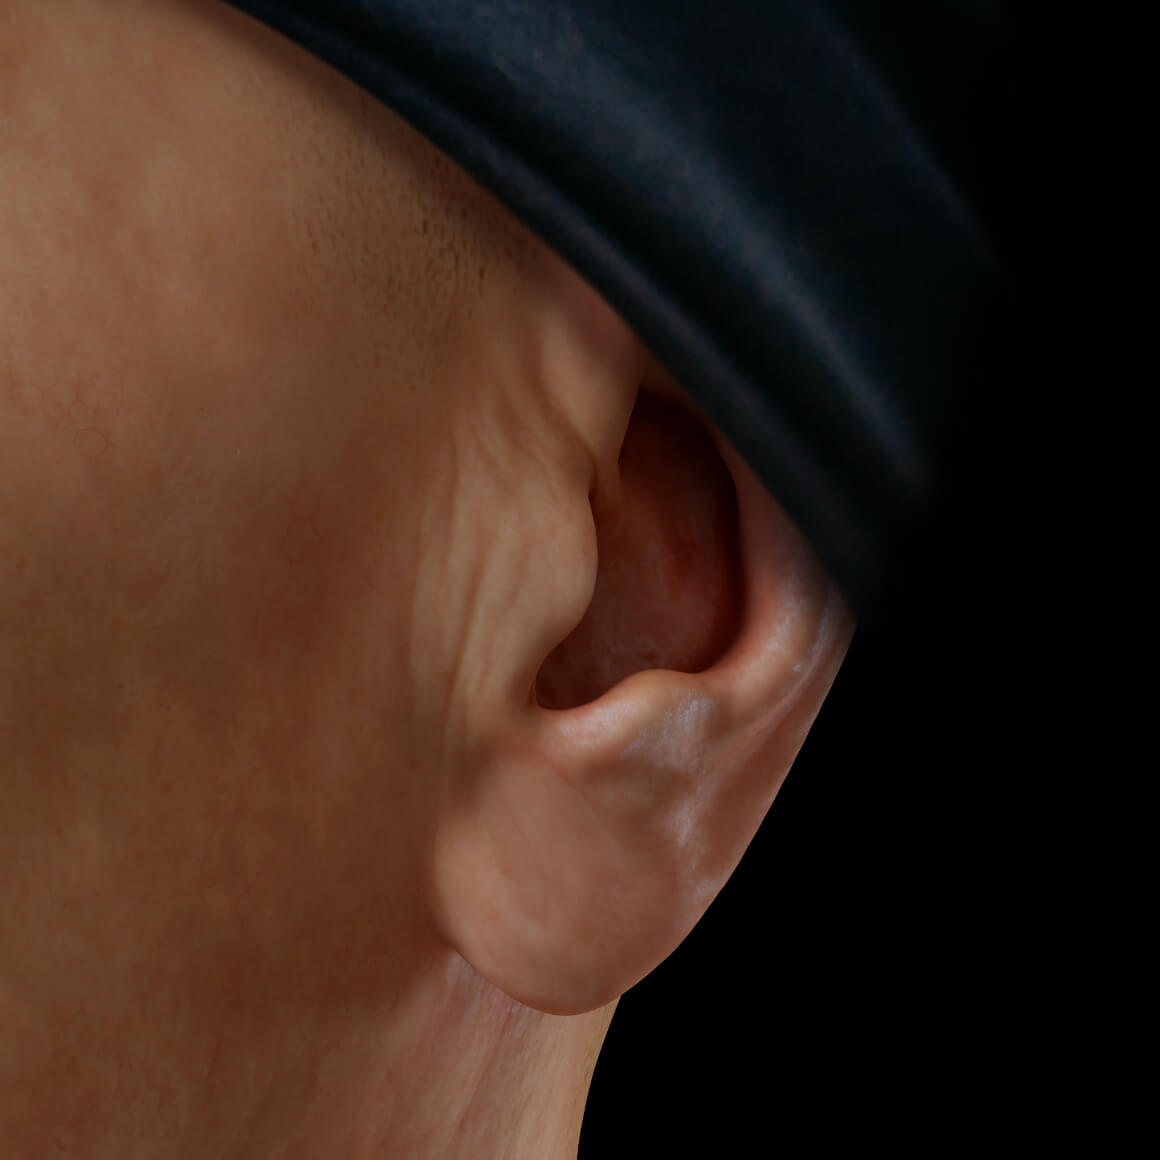 Left earlobe of a patient from Clinique Chloé positioned at an angle after dermal filler injections for earlobe correction